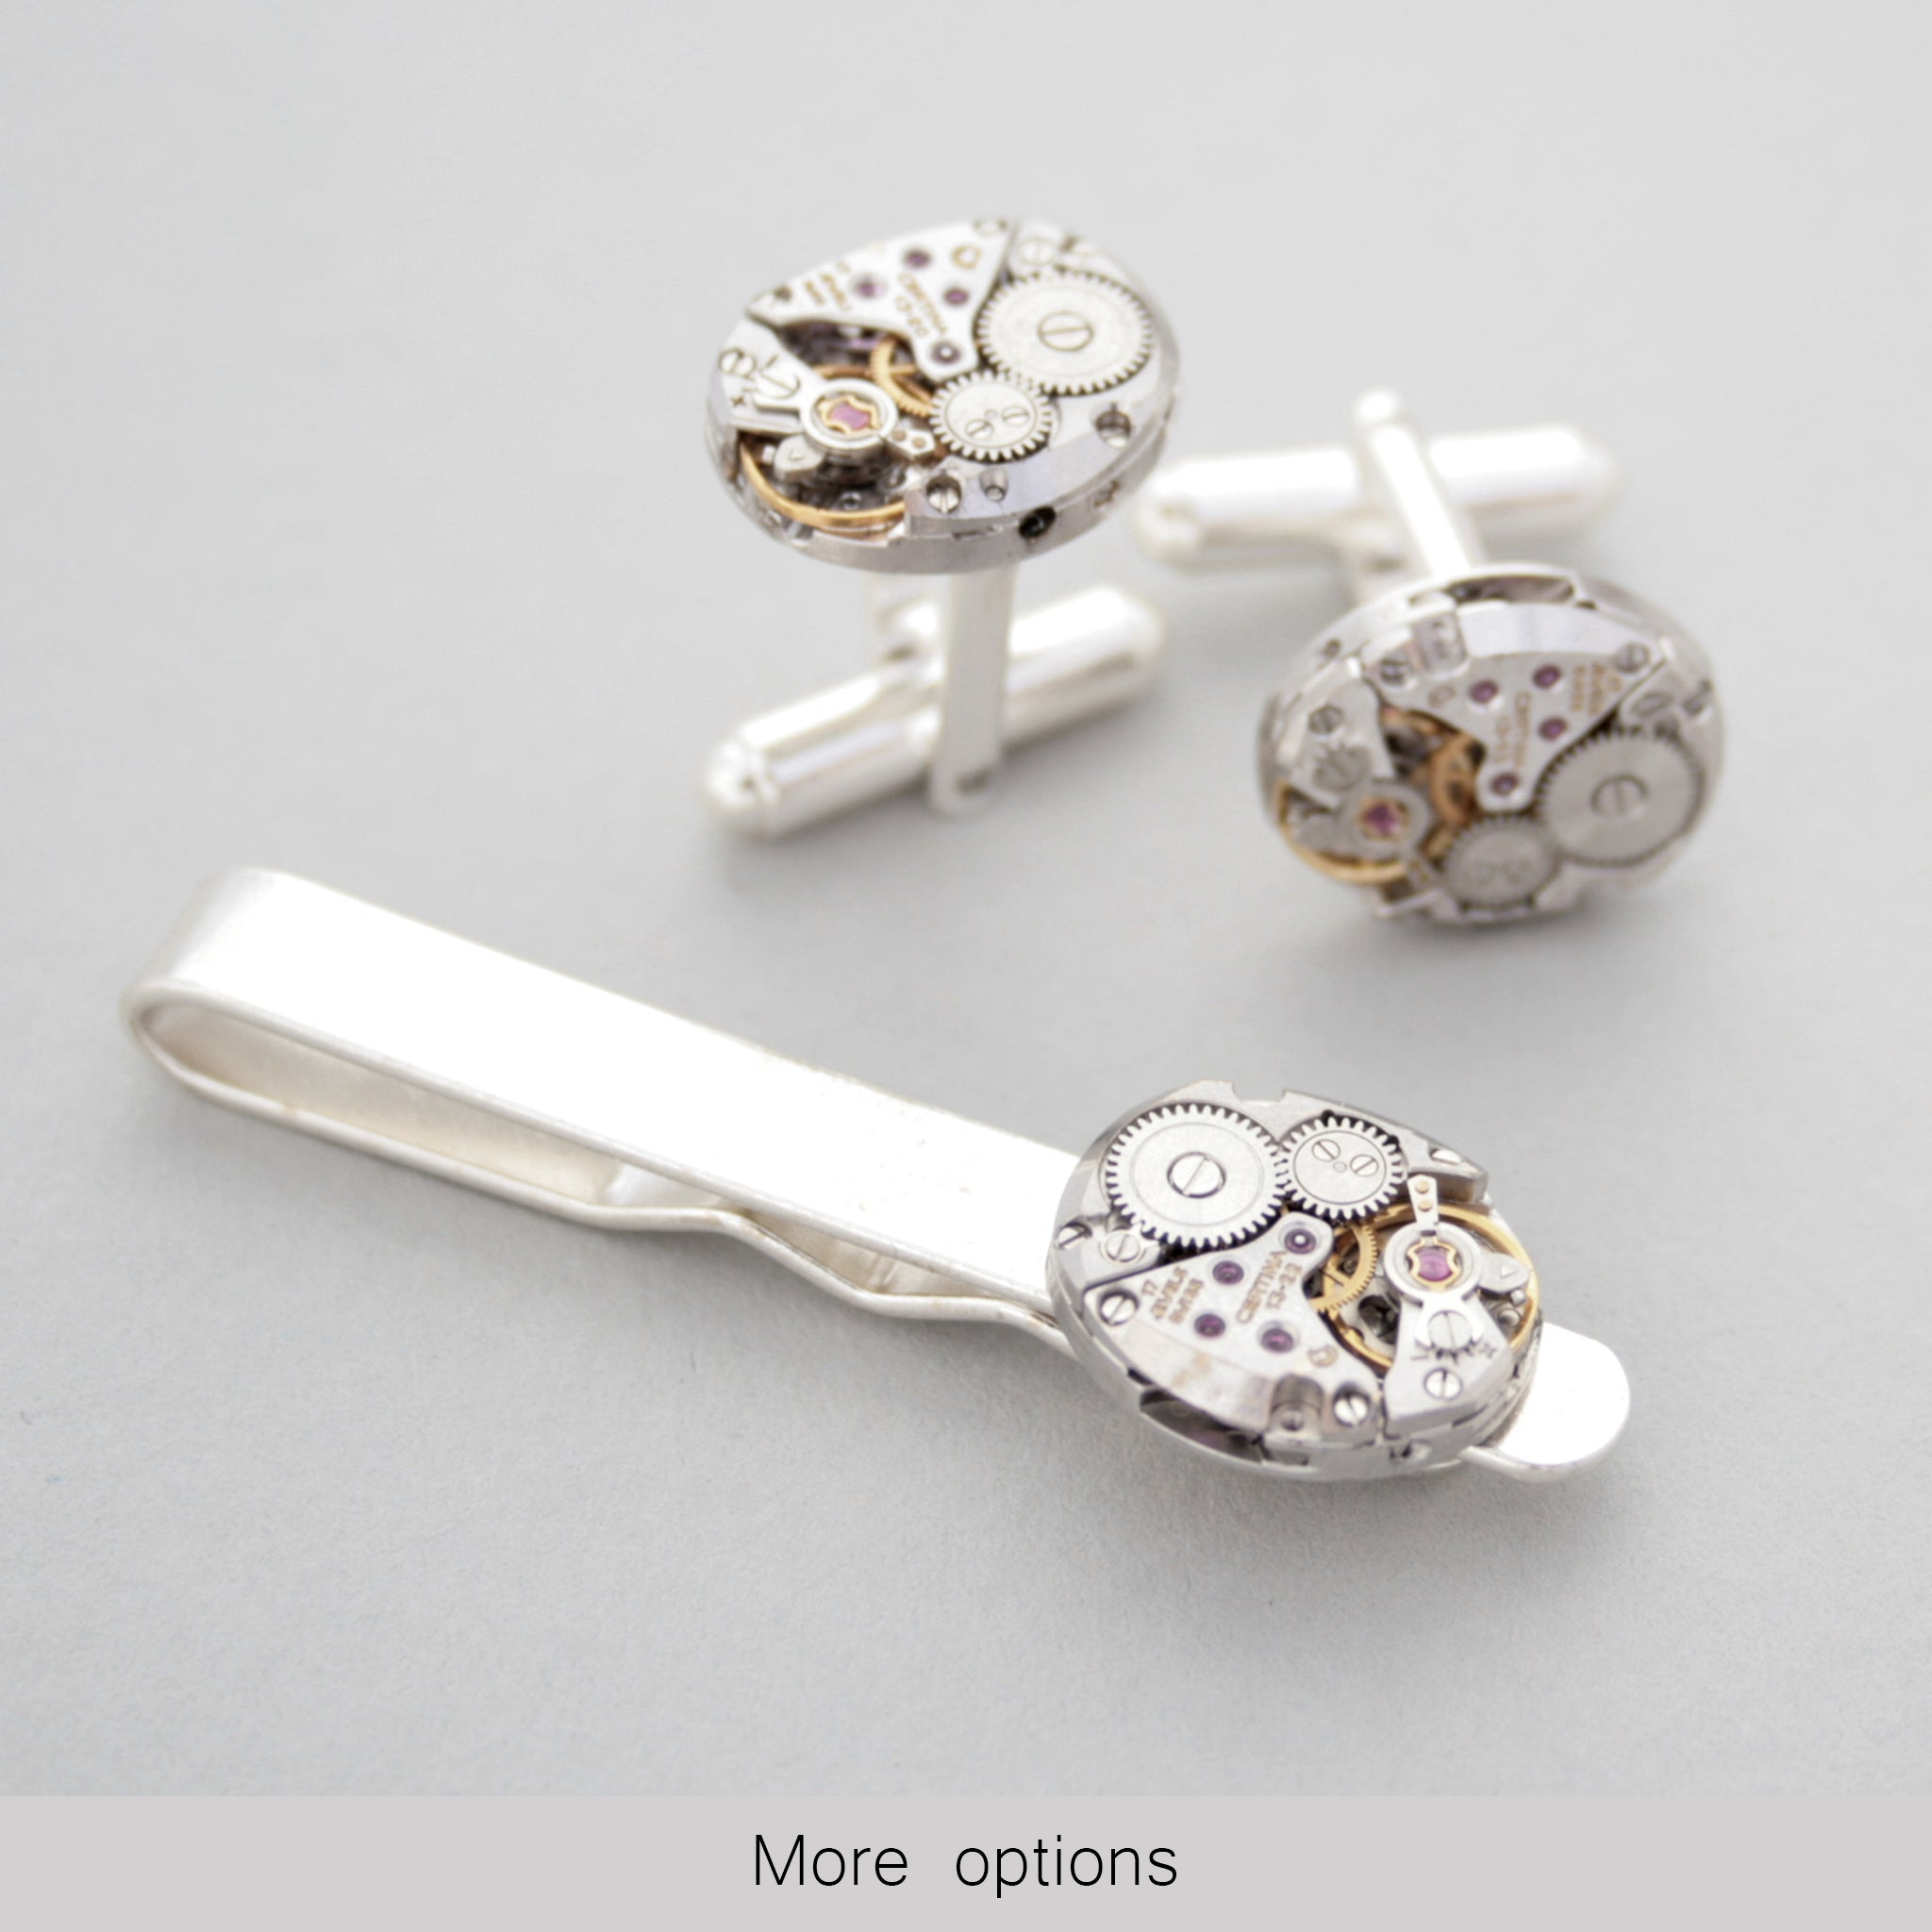 Sterling Tie Clip and Cufflinks Set